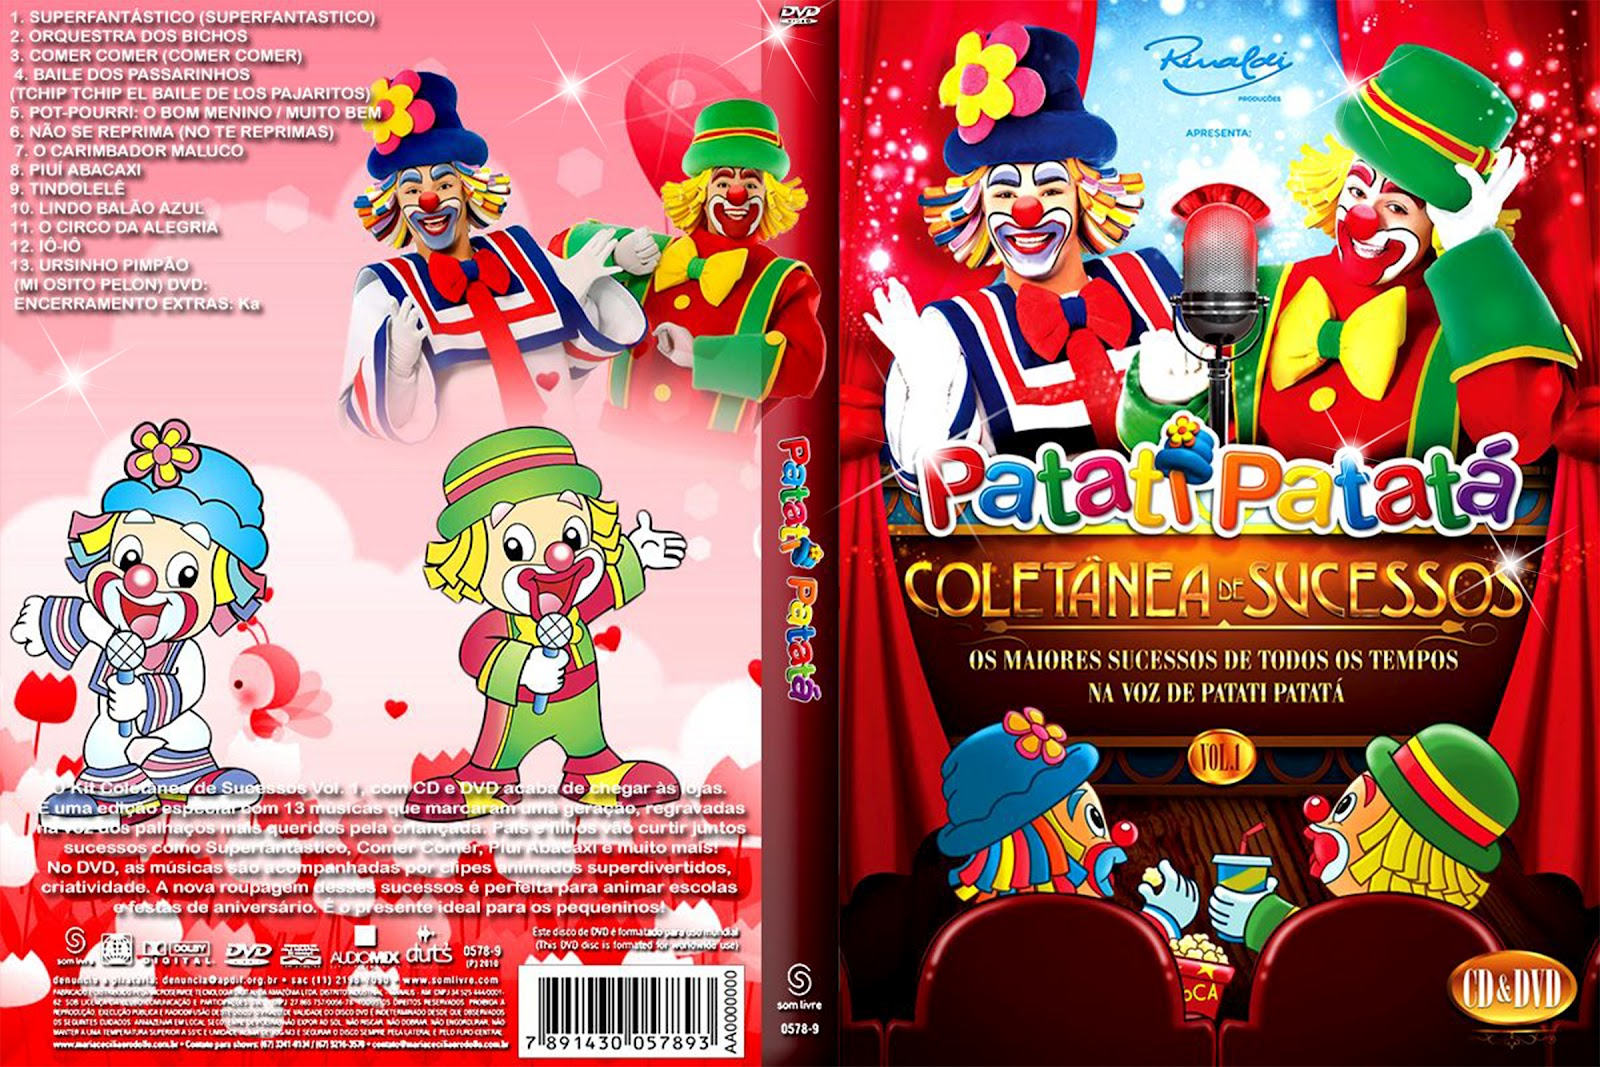 dvd do patati patata 2012 gratis